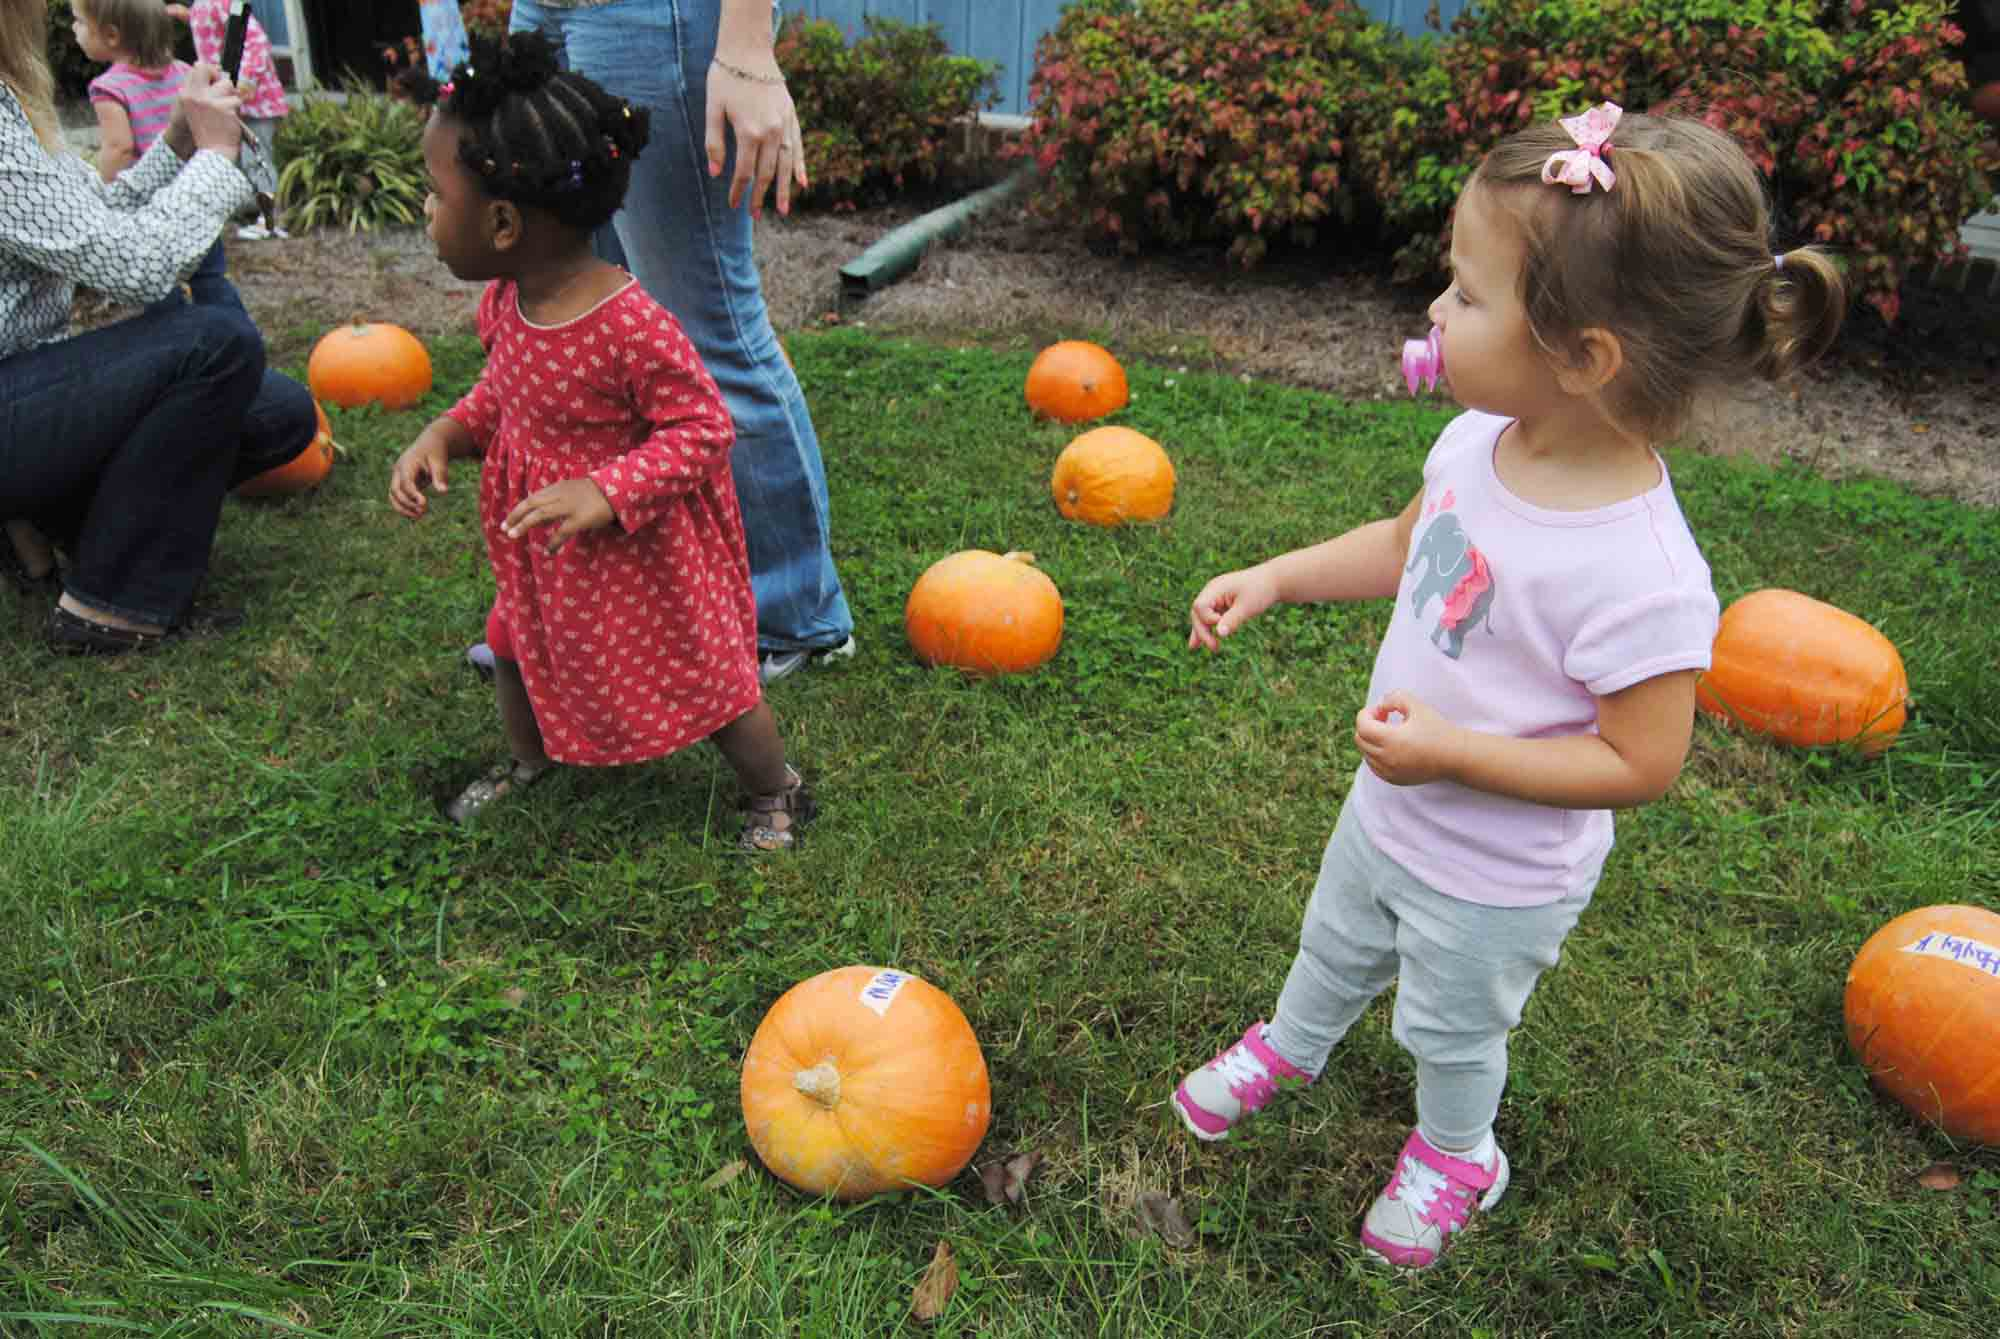 Children at Cathy Lee Development Childcare Center in Knightdale, NC, participate in a pumpkin patch. Photo by The News & Observer.